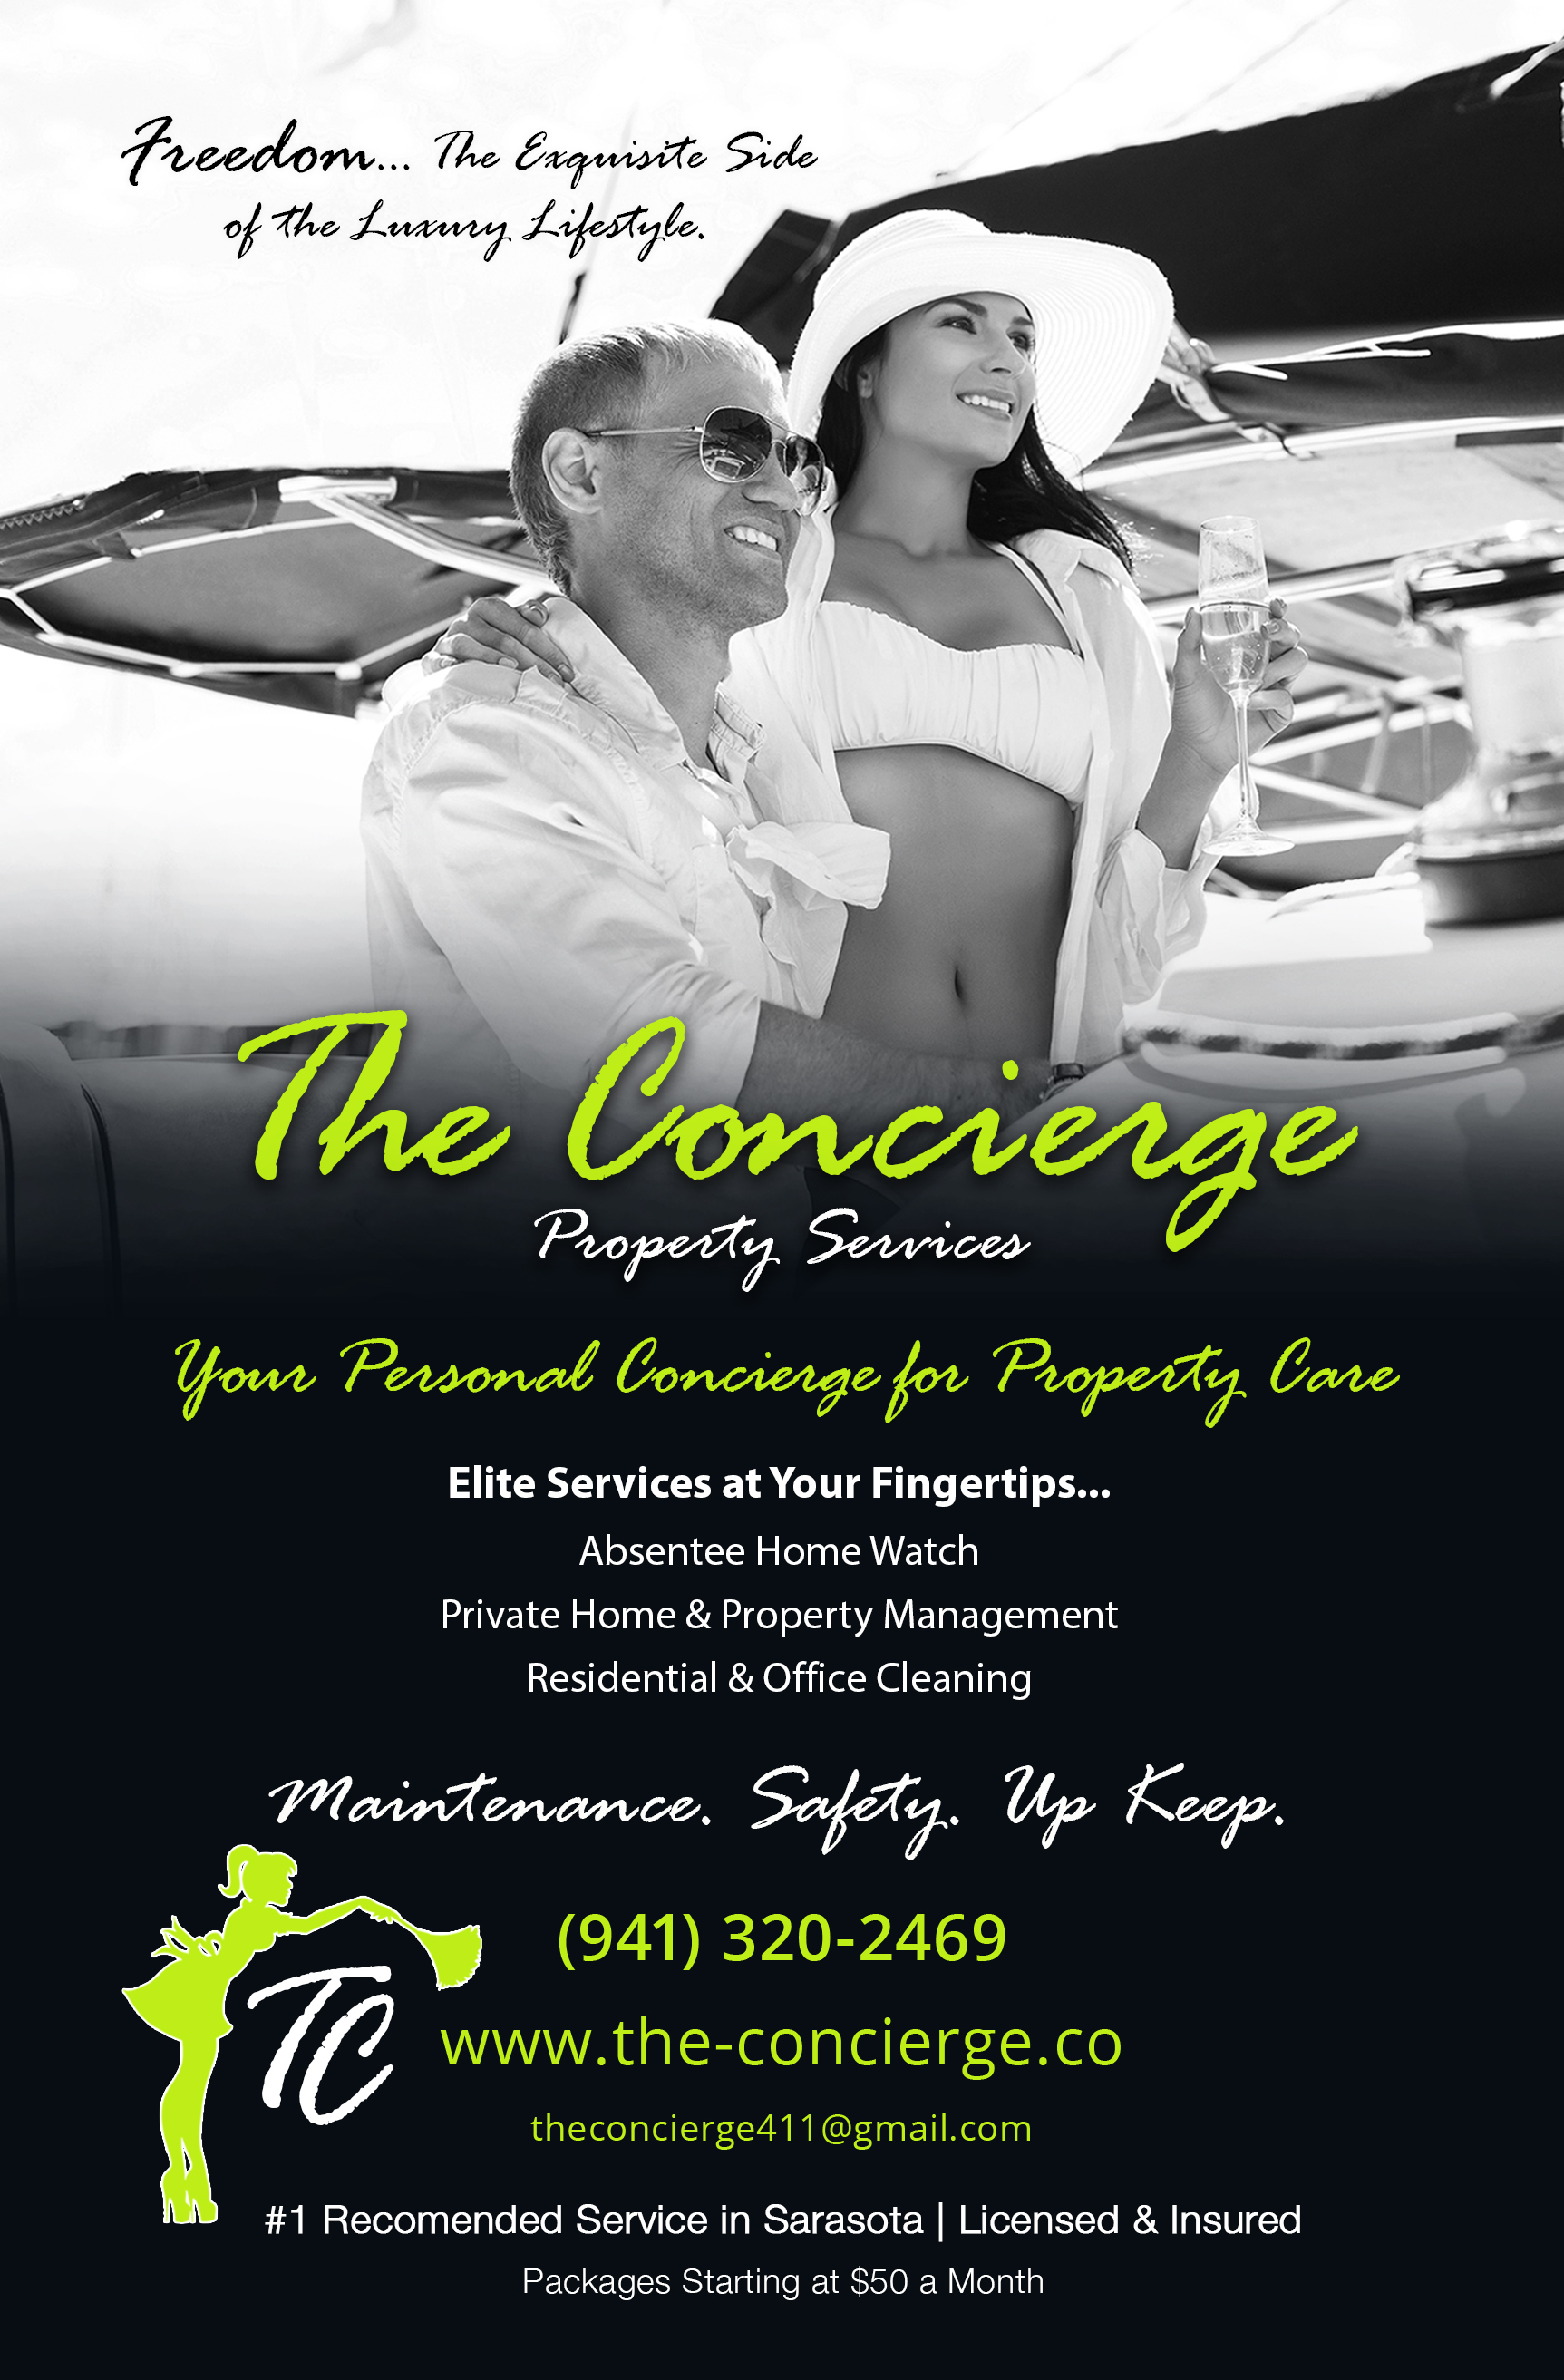 The Concierge image 5